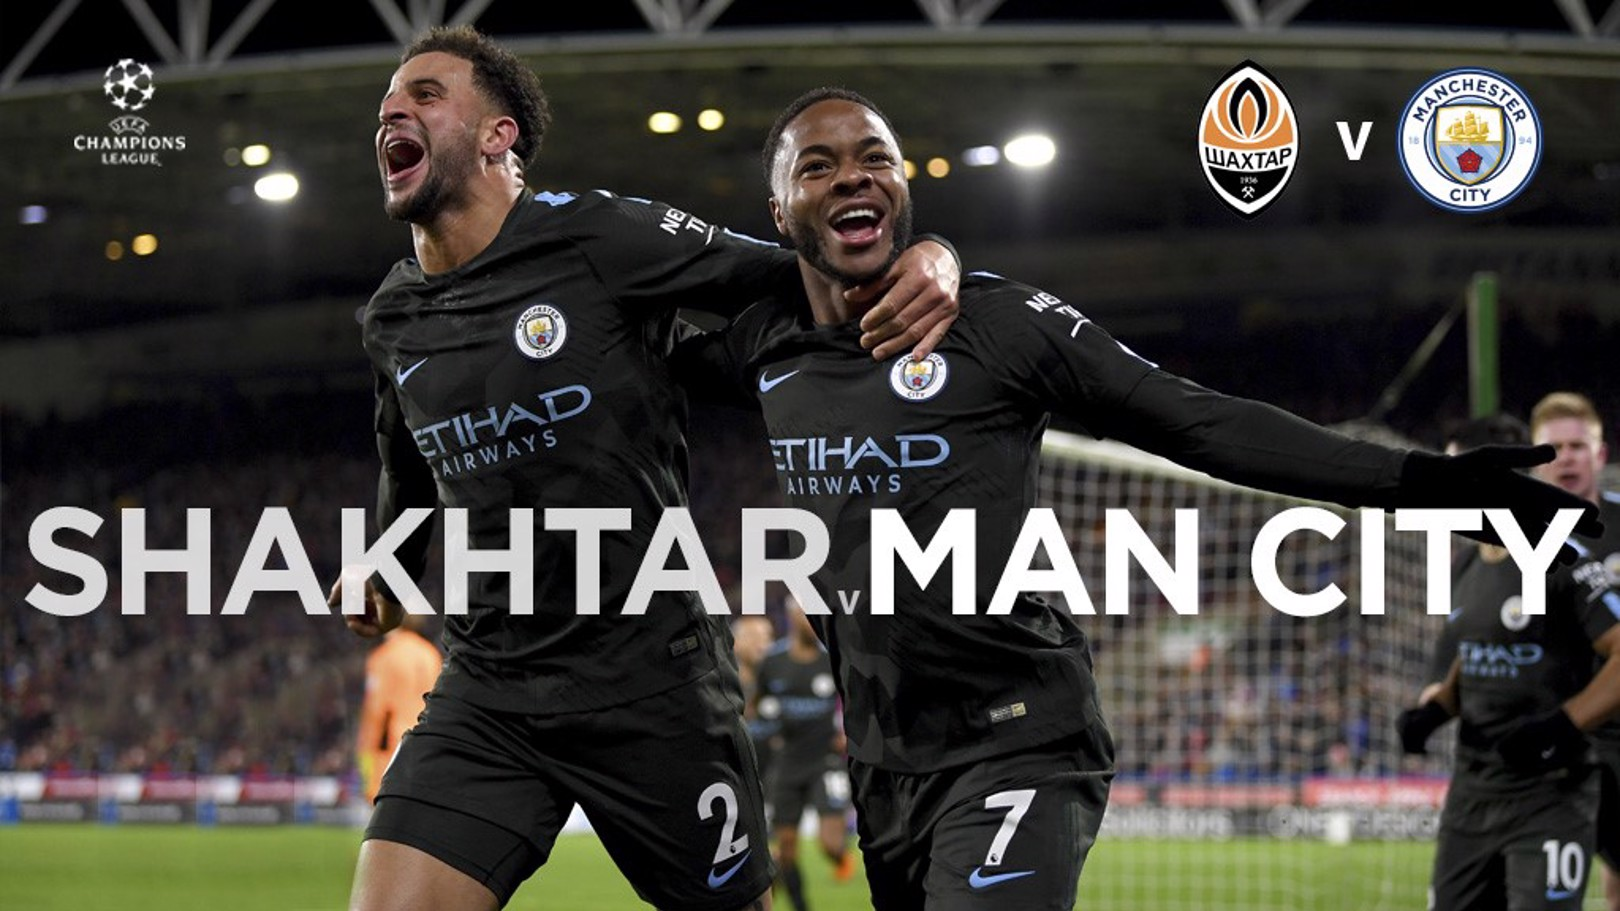 Shakhtar x Man City